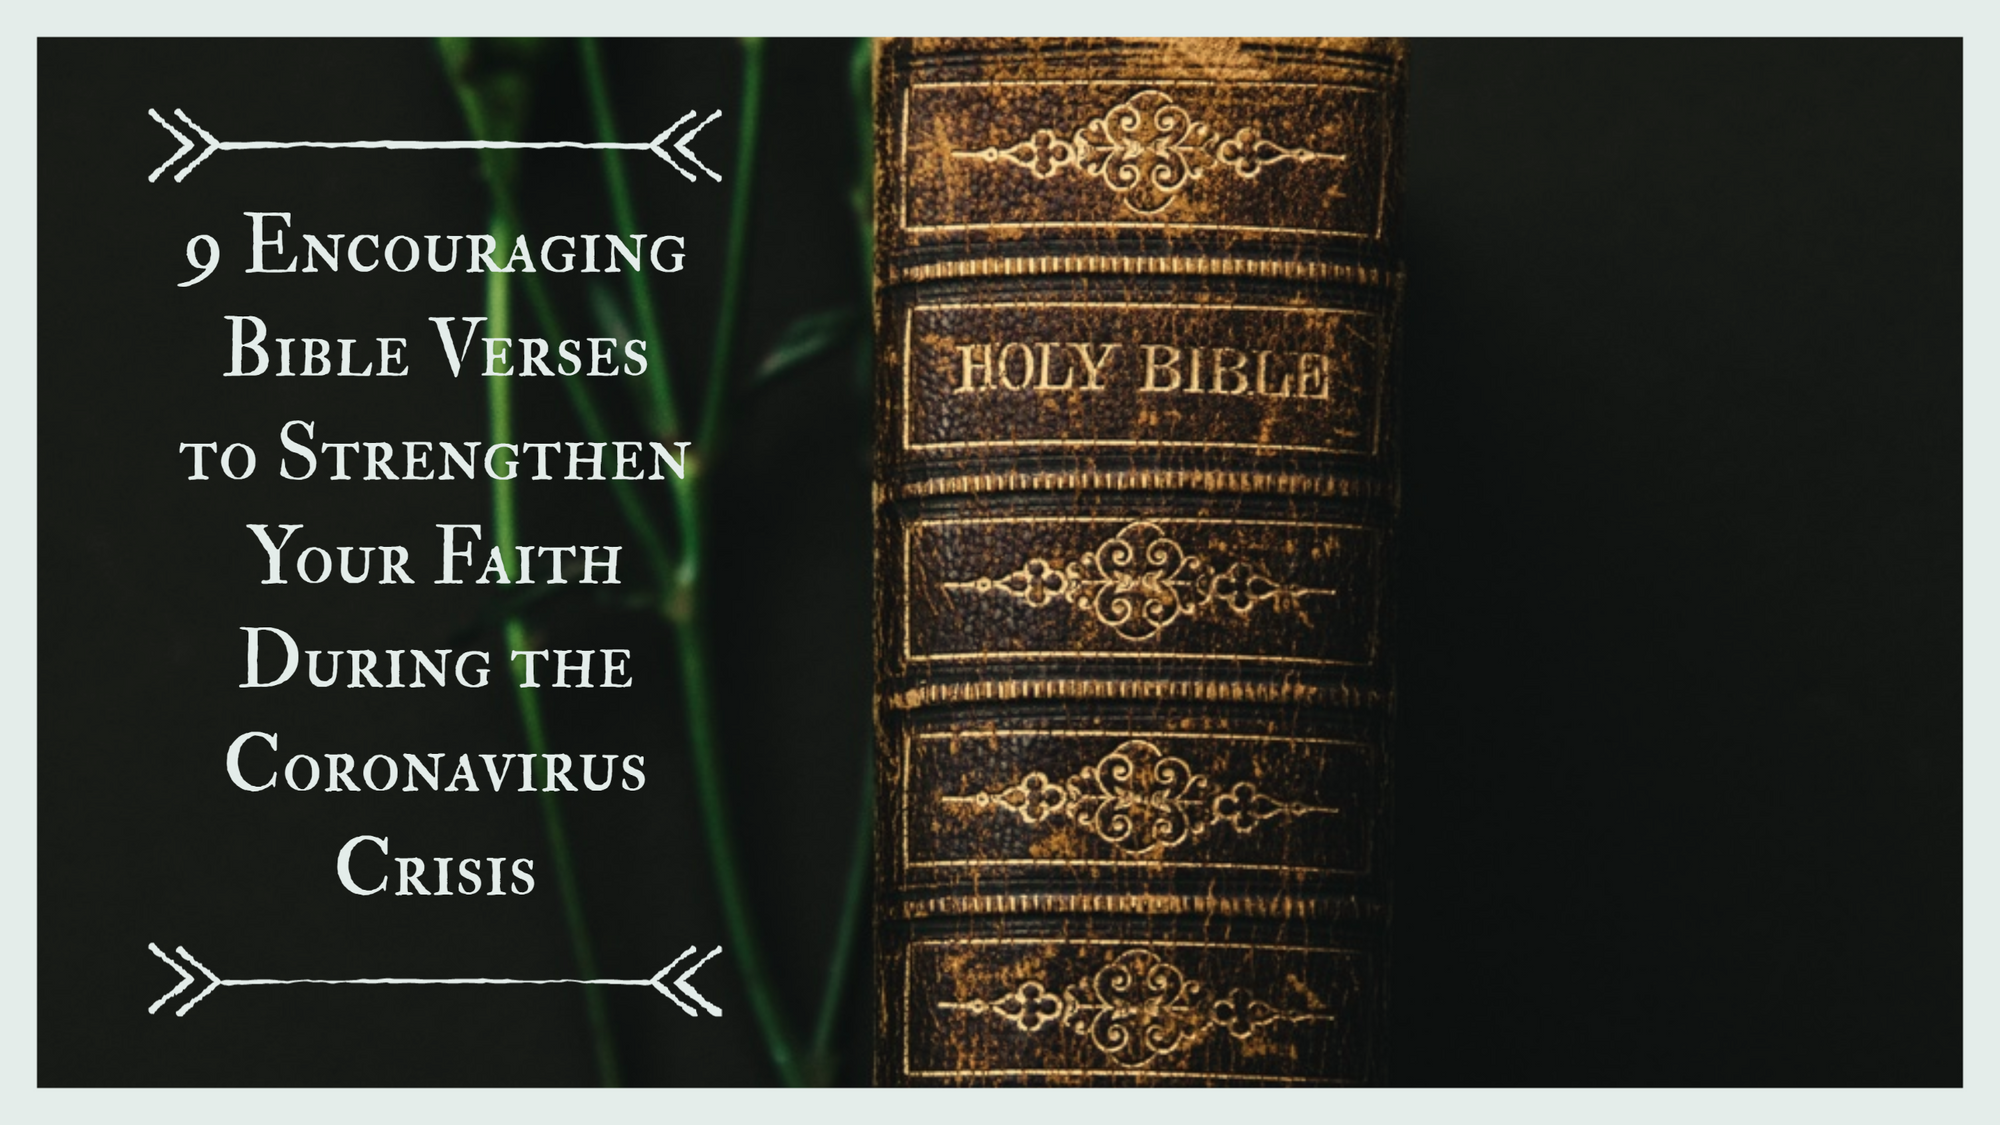 9 Encouraging Bible Verses to Strengthen Your Faith During the Coronavirus Crisis